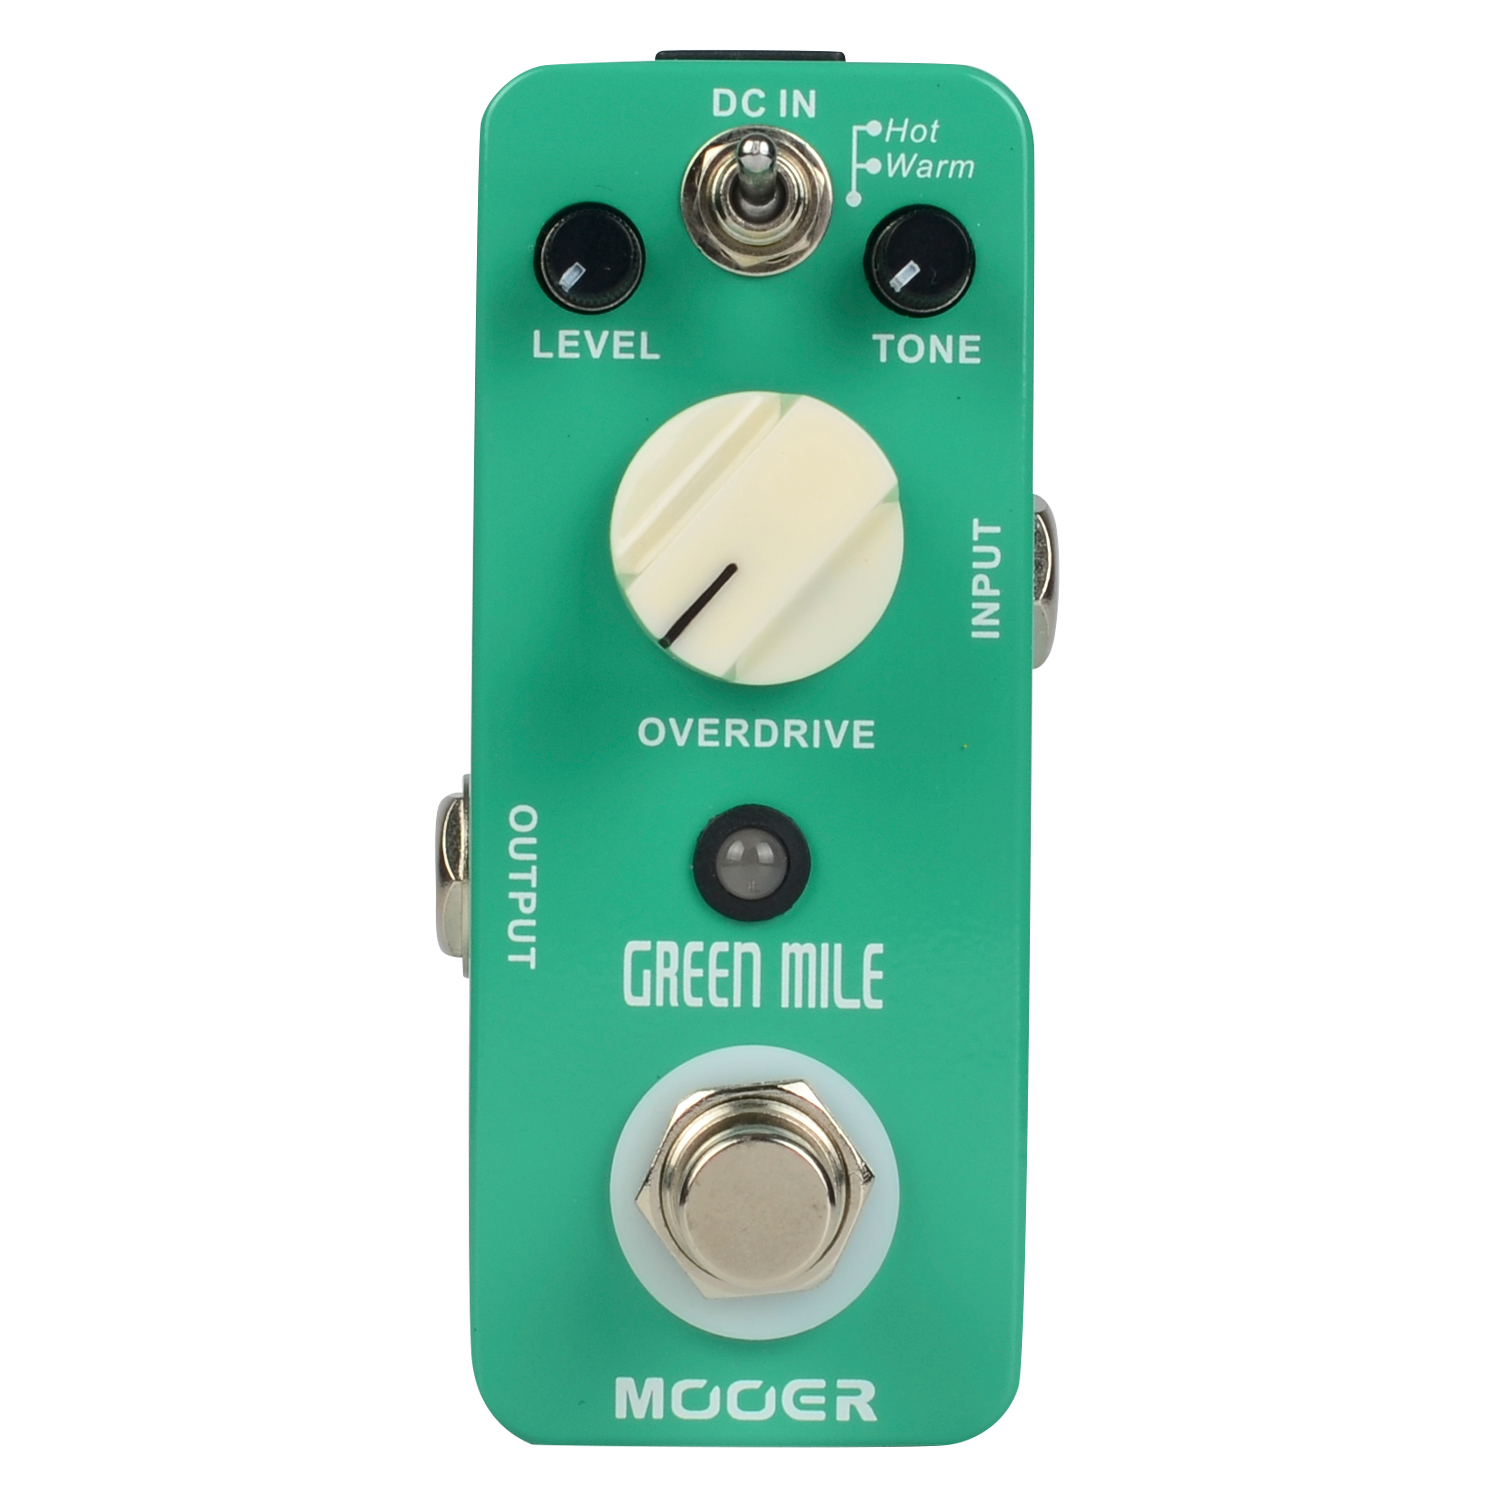 Mooer Green Mile Overdrive Micro Guitar Effects Pedal Warm and Hot Modes True Bypass MOD1 mooer ninety orange phaser guitar effect pedal micro analog effects true bypass with free connector and footswitch topper